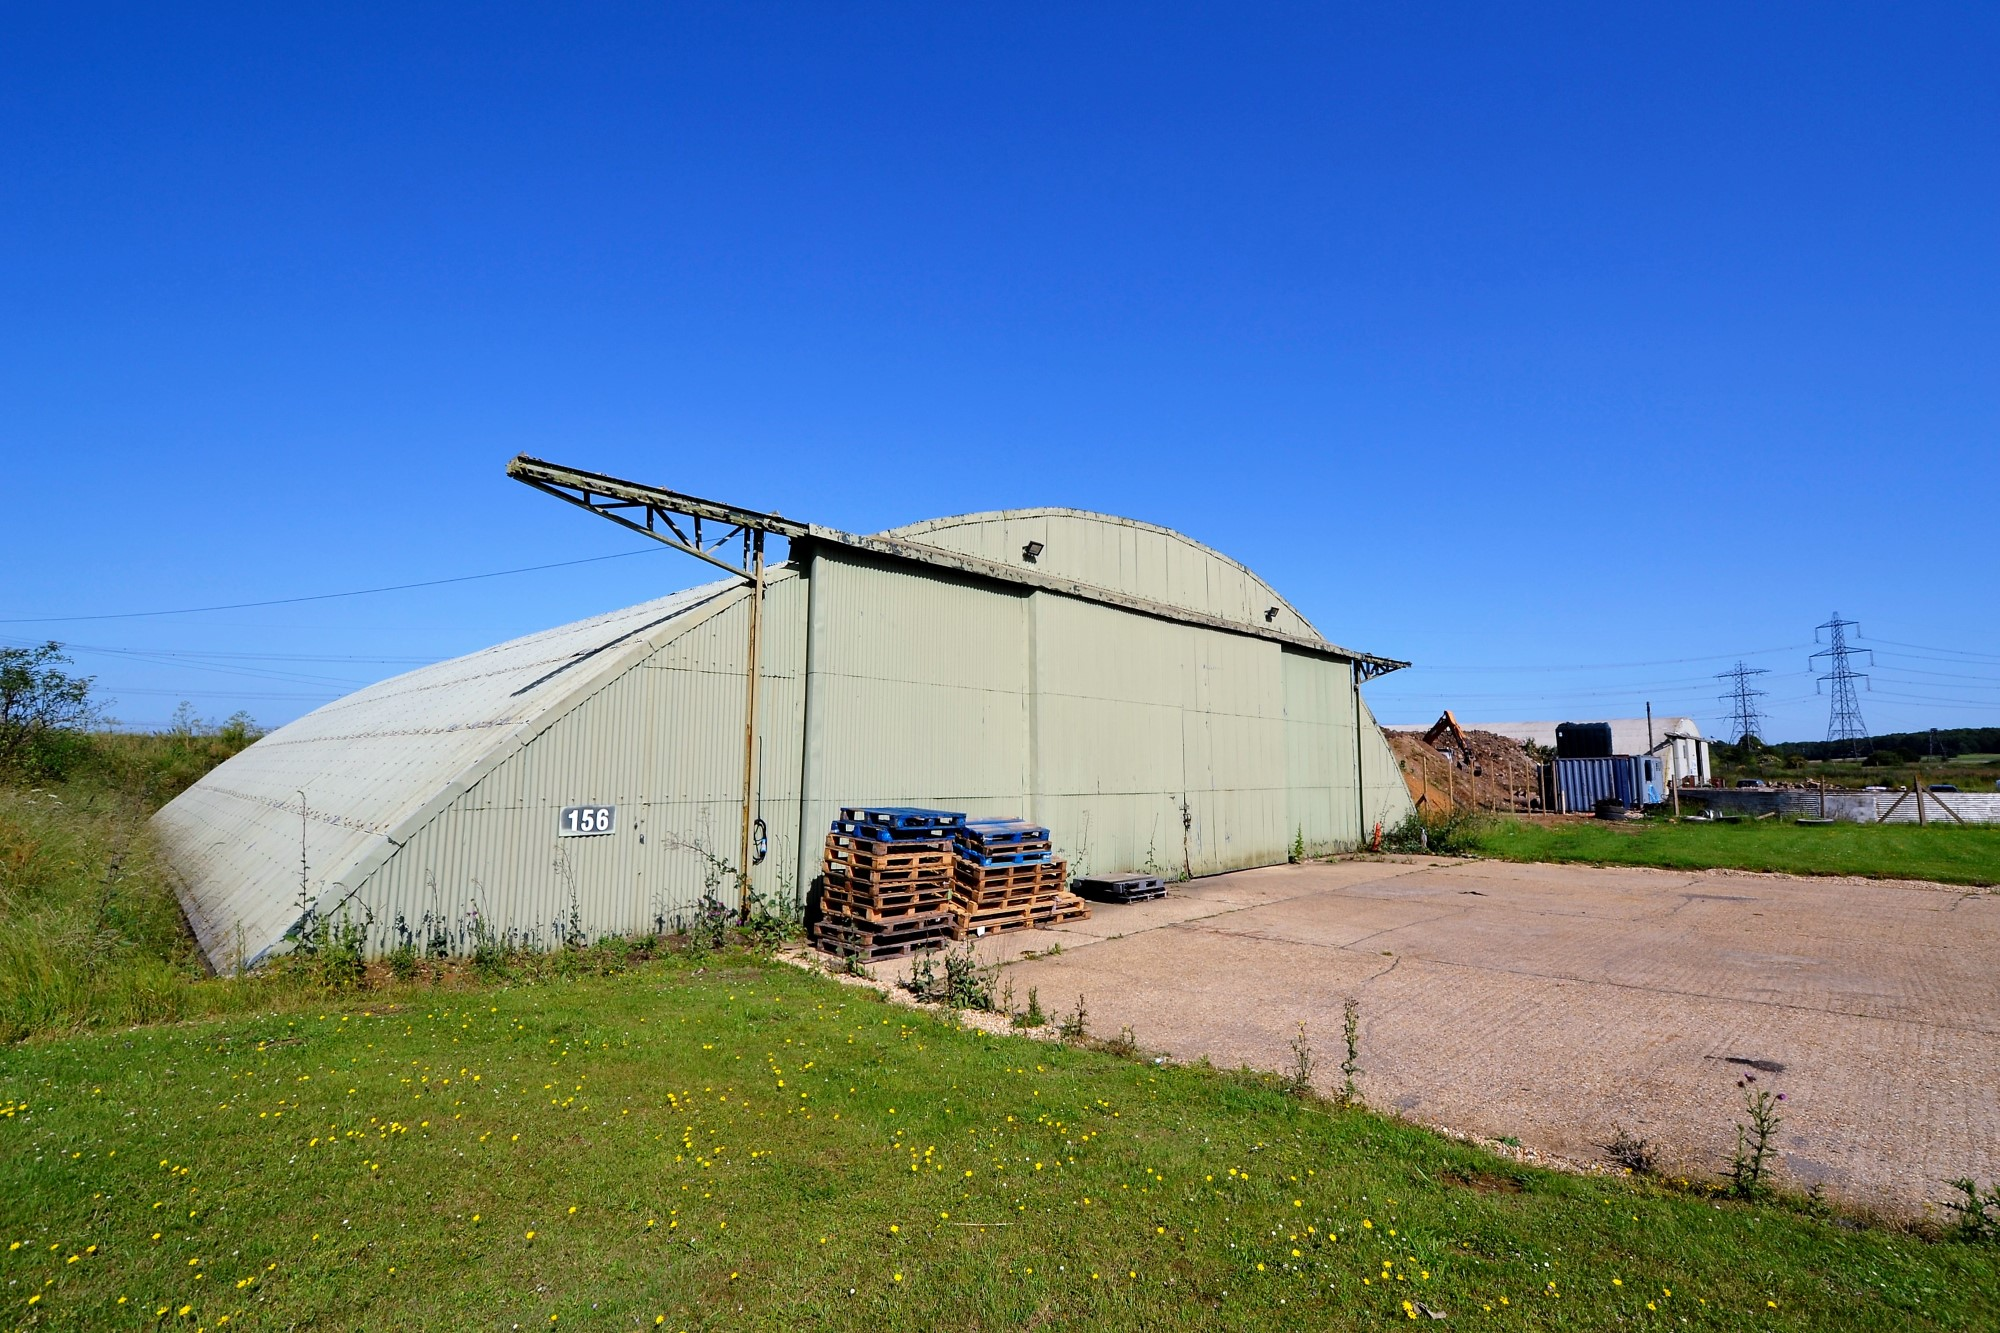 Similar property | Hangars, Culham No 1 Site - Culham